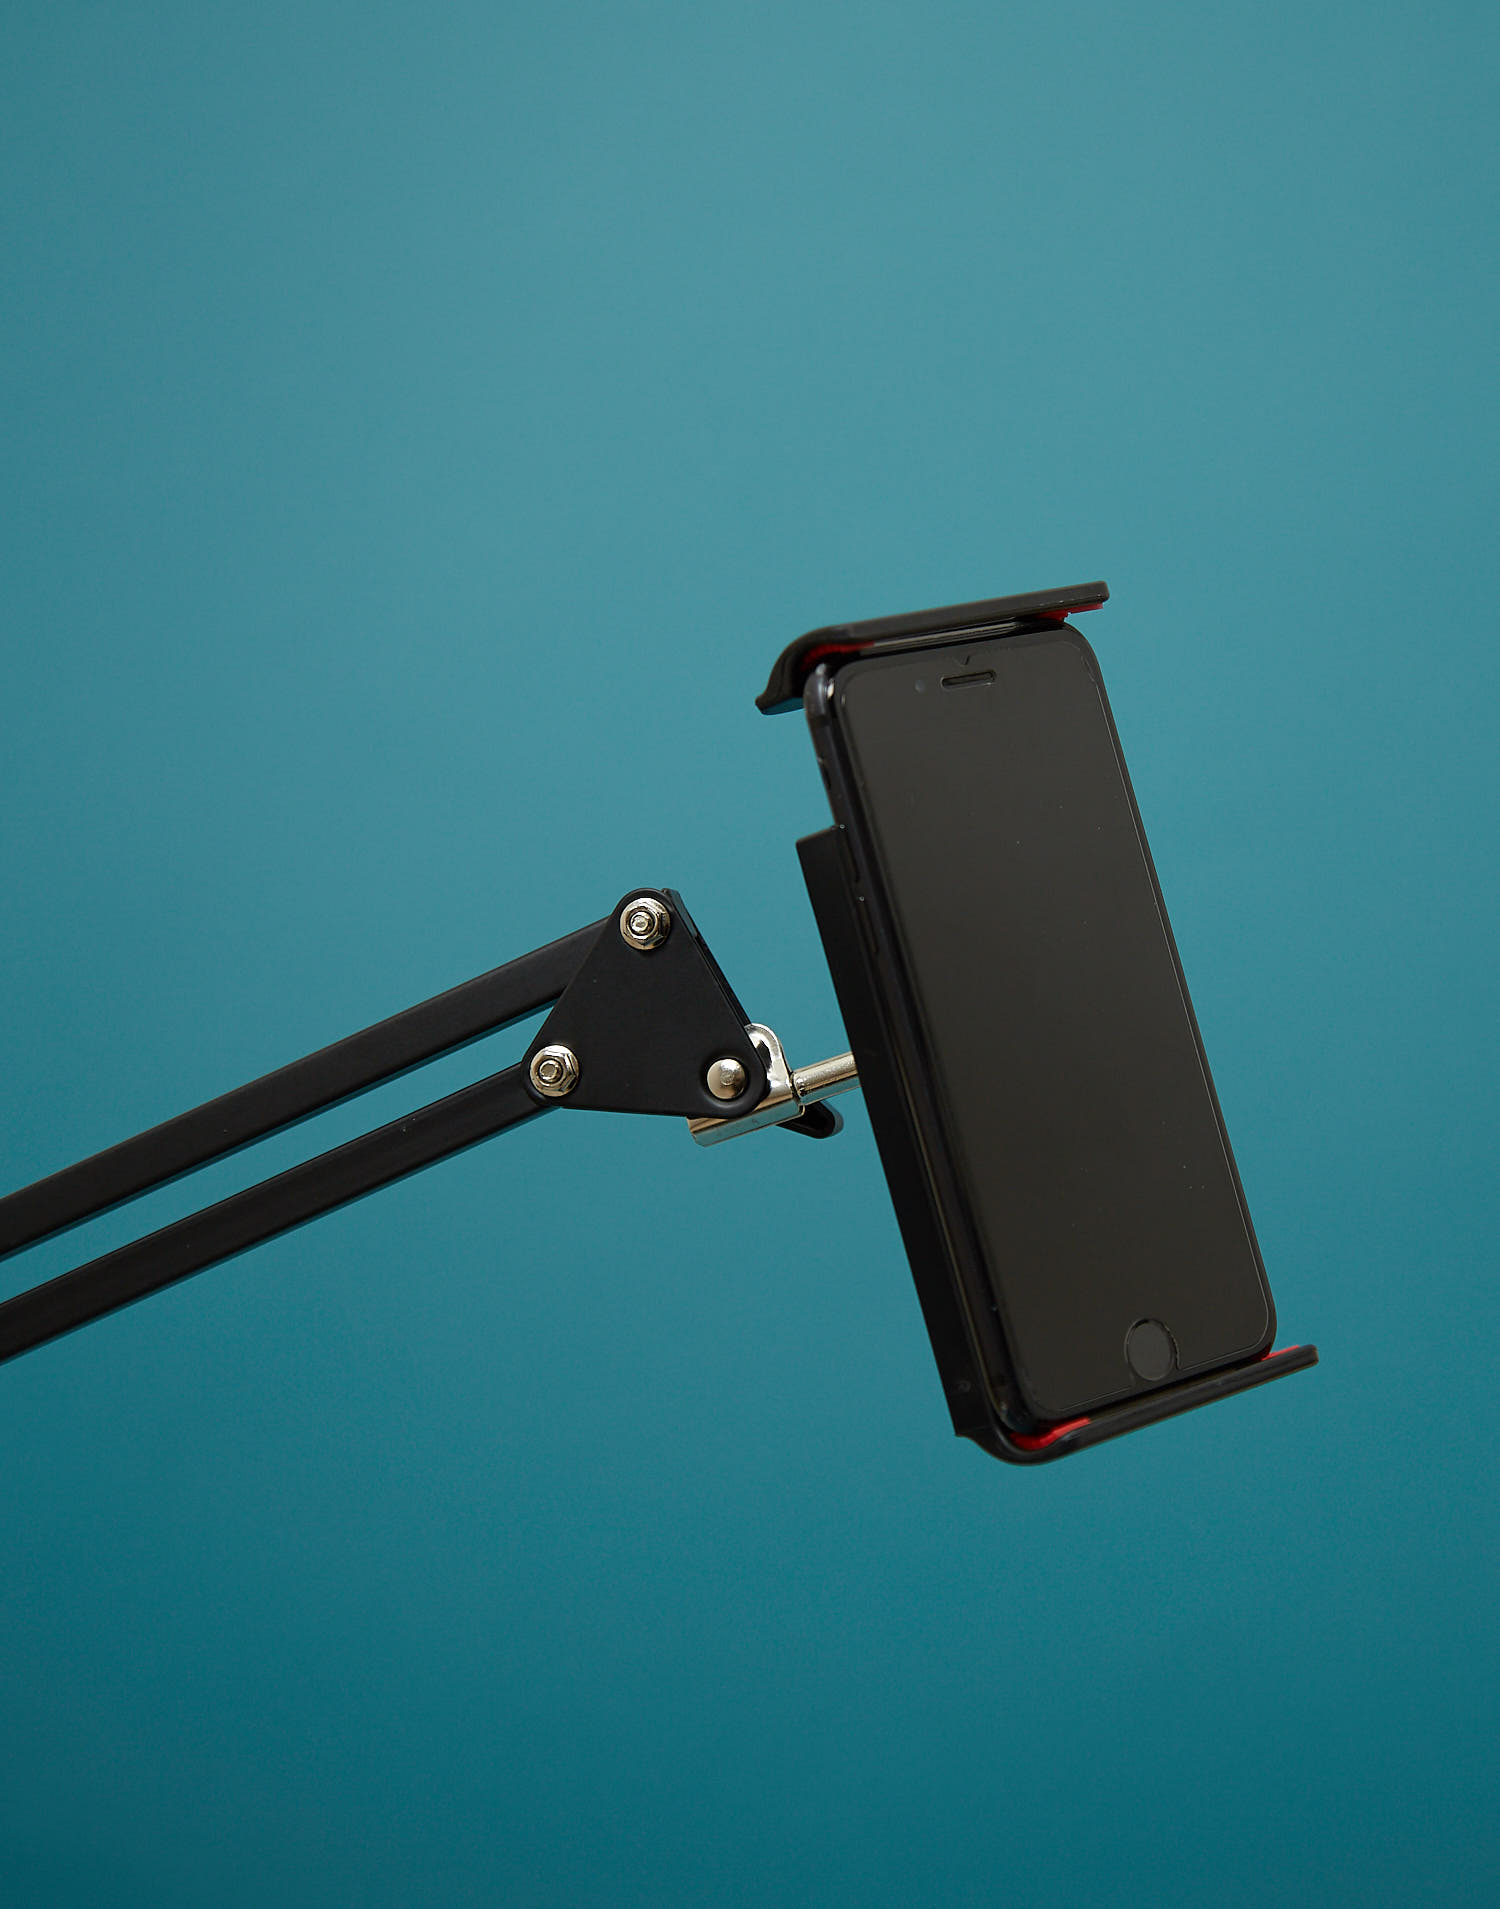 Phone and tablet flex mount